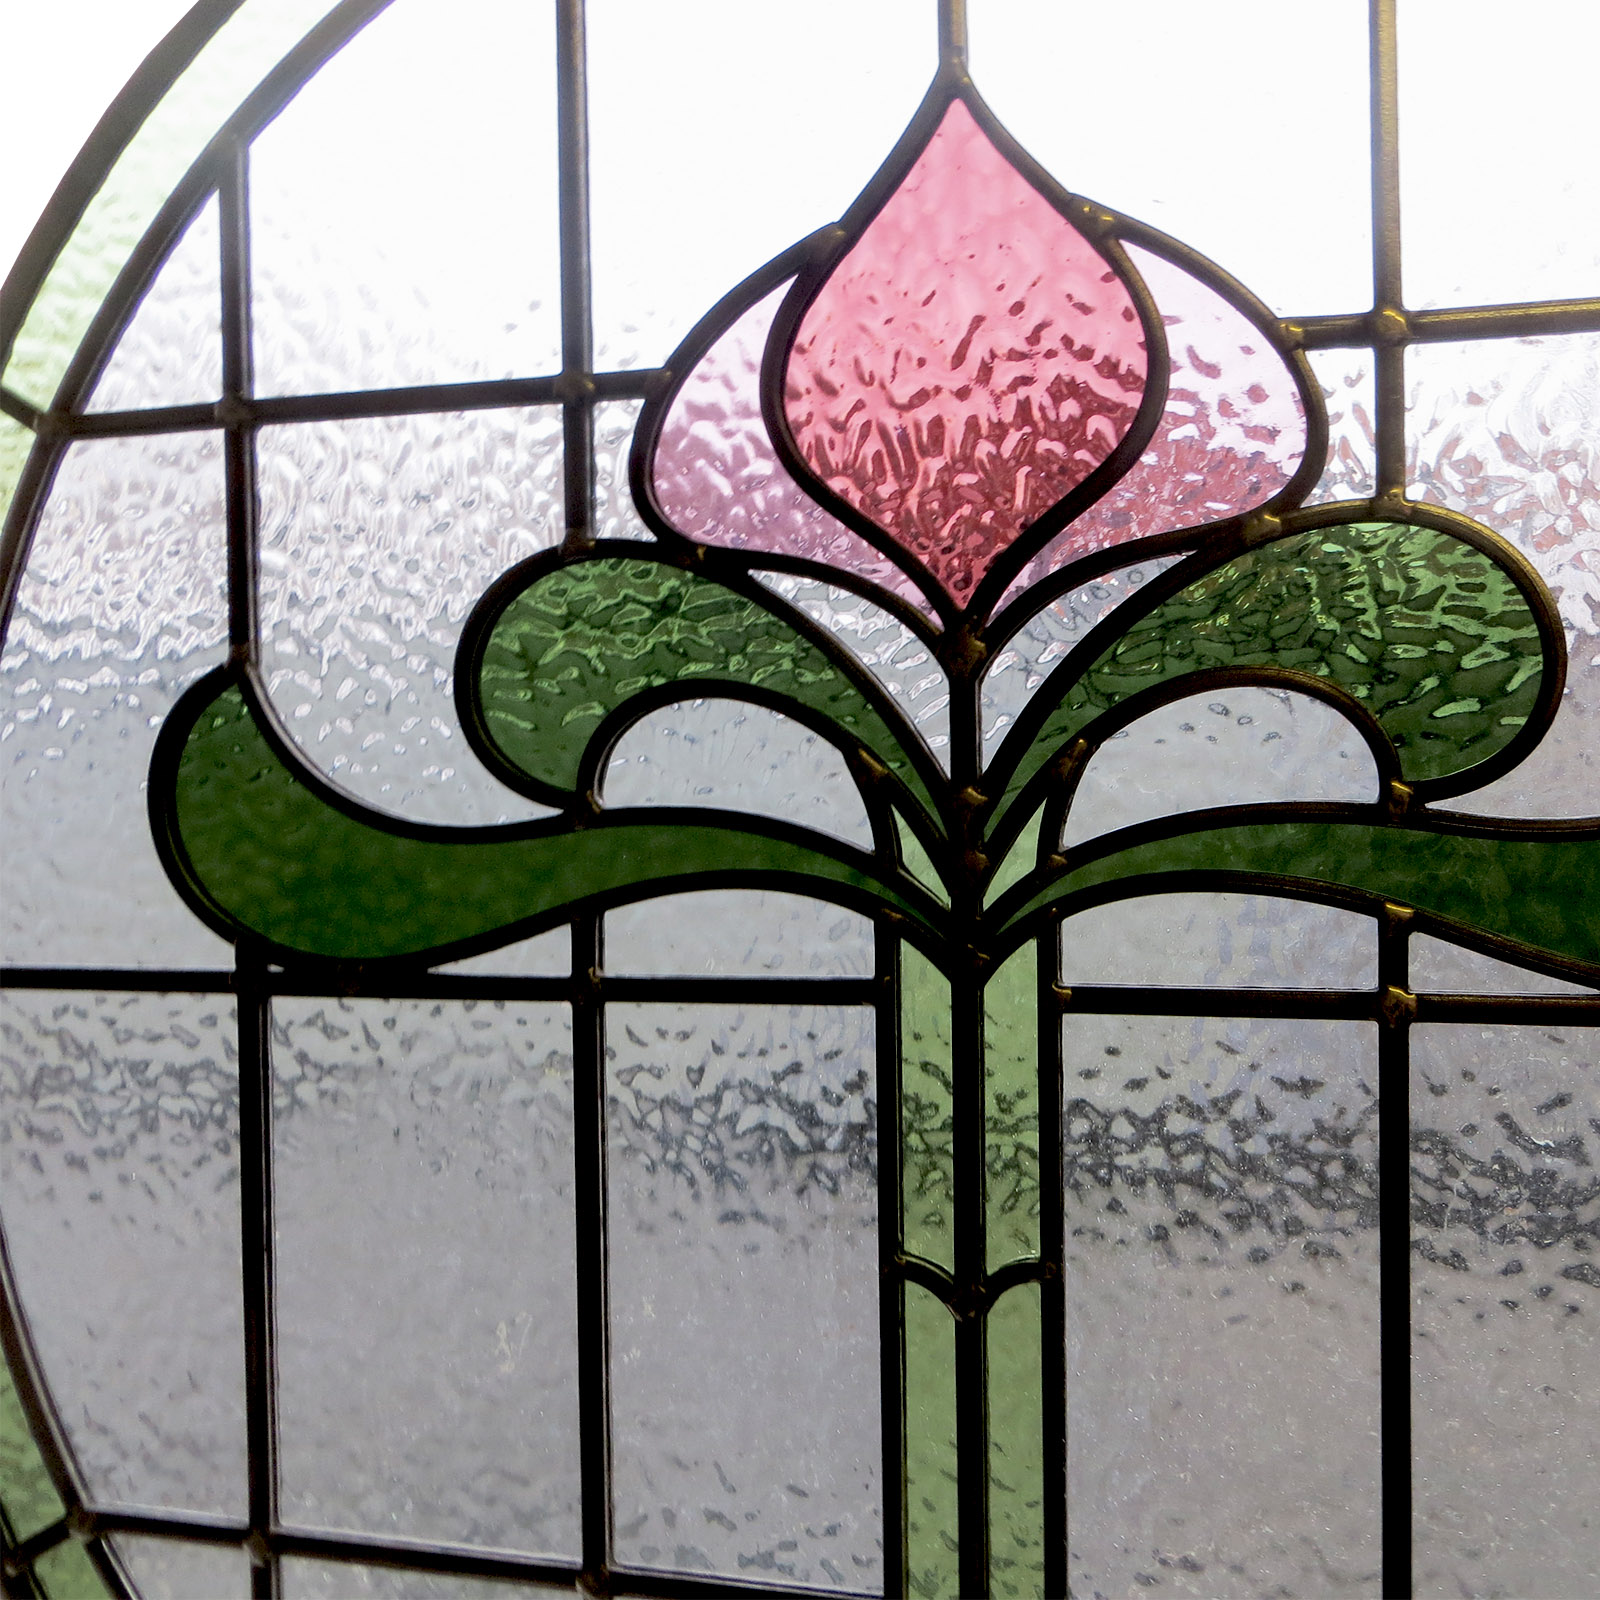 1930s art nouveau stained glass from period home style for 1930s stained glass window designs